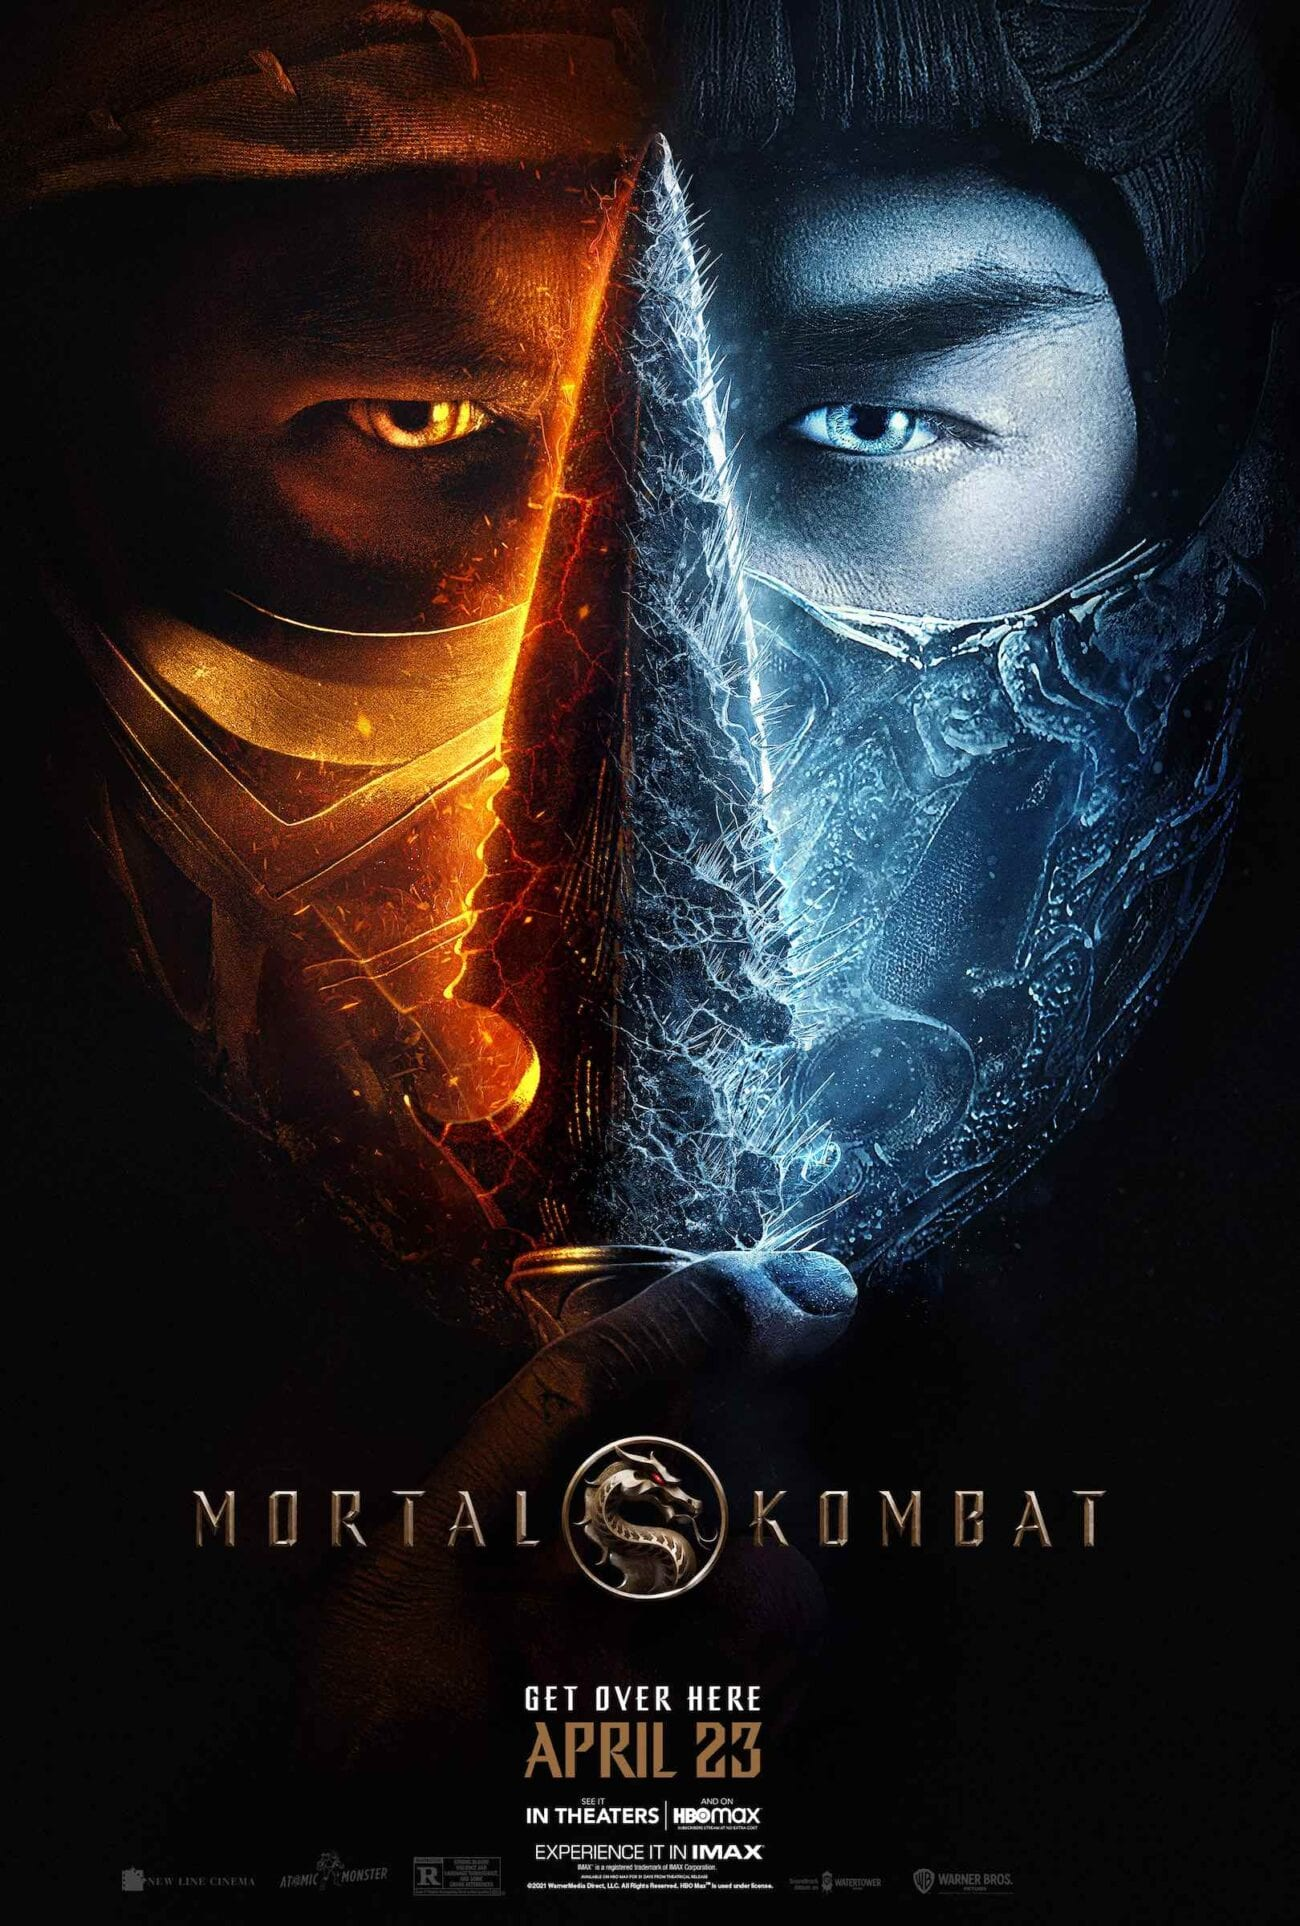 The new Mortal Kombat film has been released and fans are opinionated. Grab your black belts and dive into the reactions to the new Mortal Kombat movie